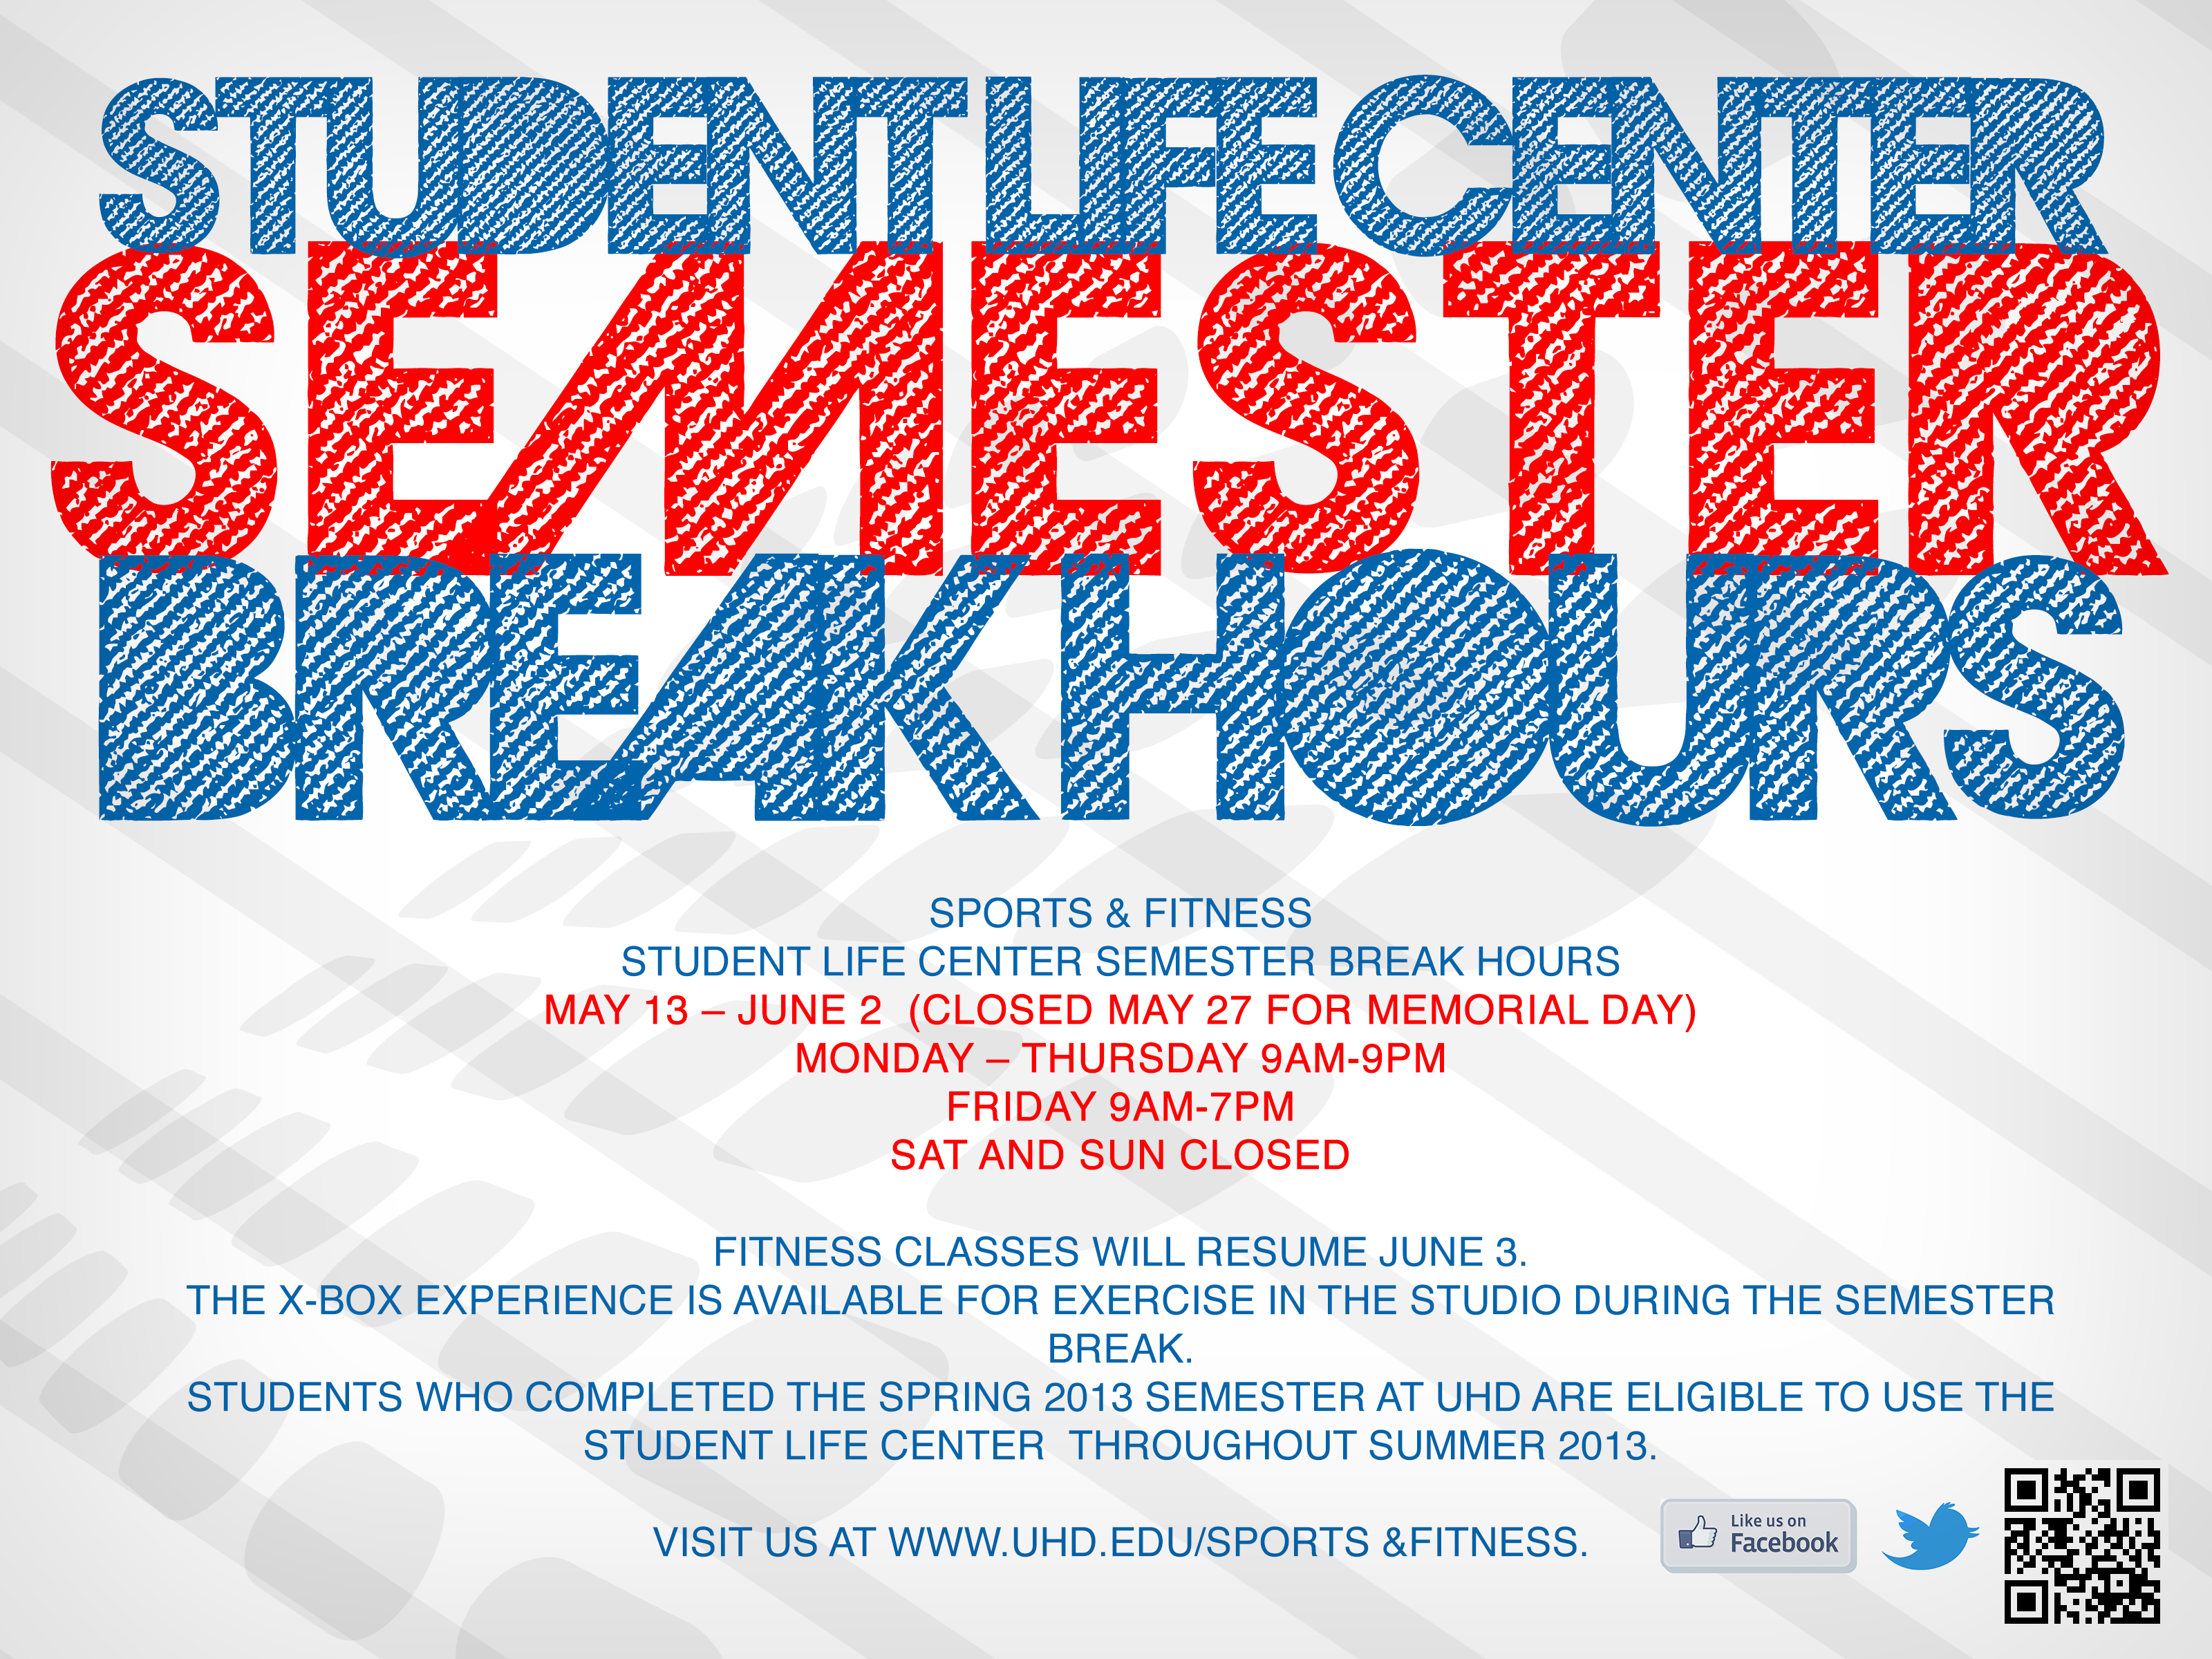 StudentLifeCenter-Semester-break-hours-2013